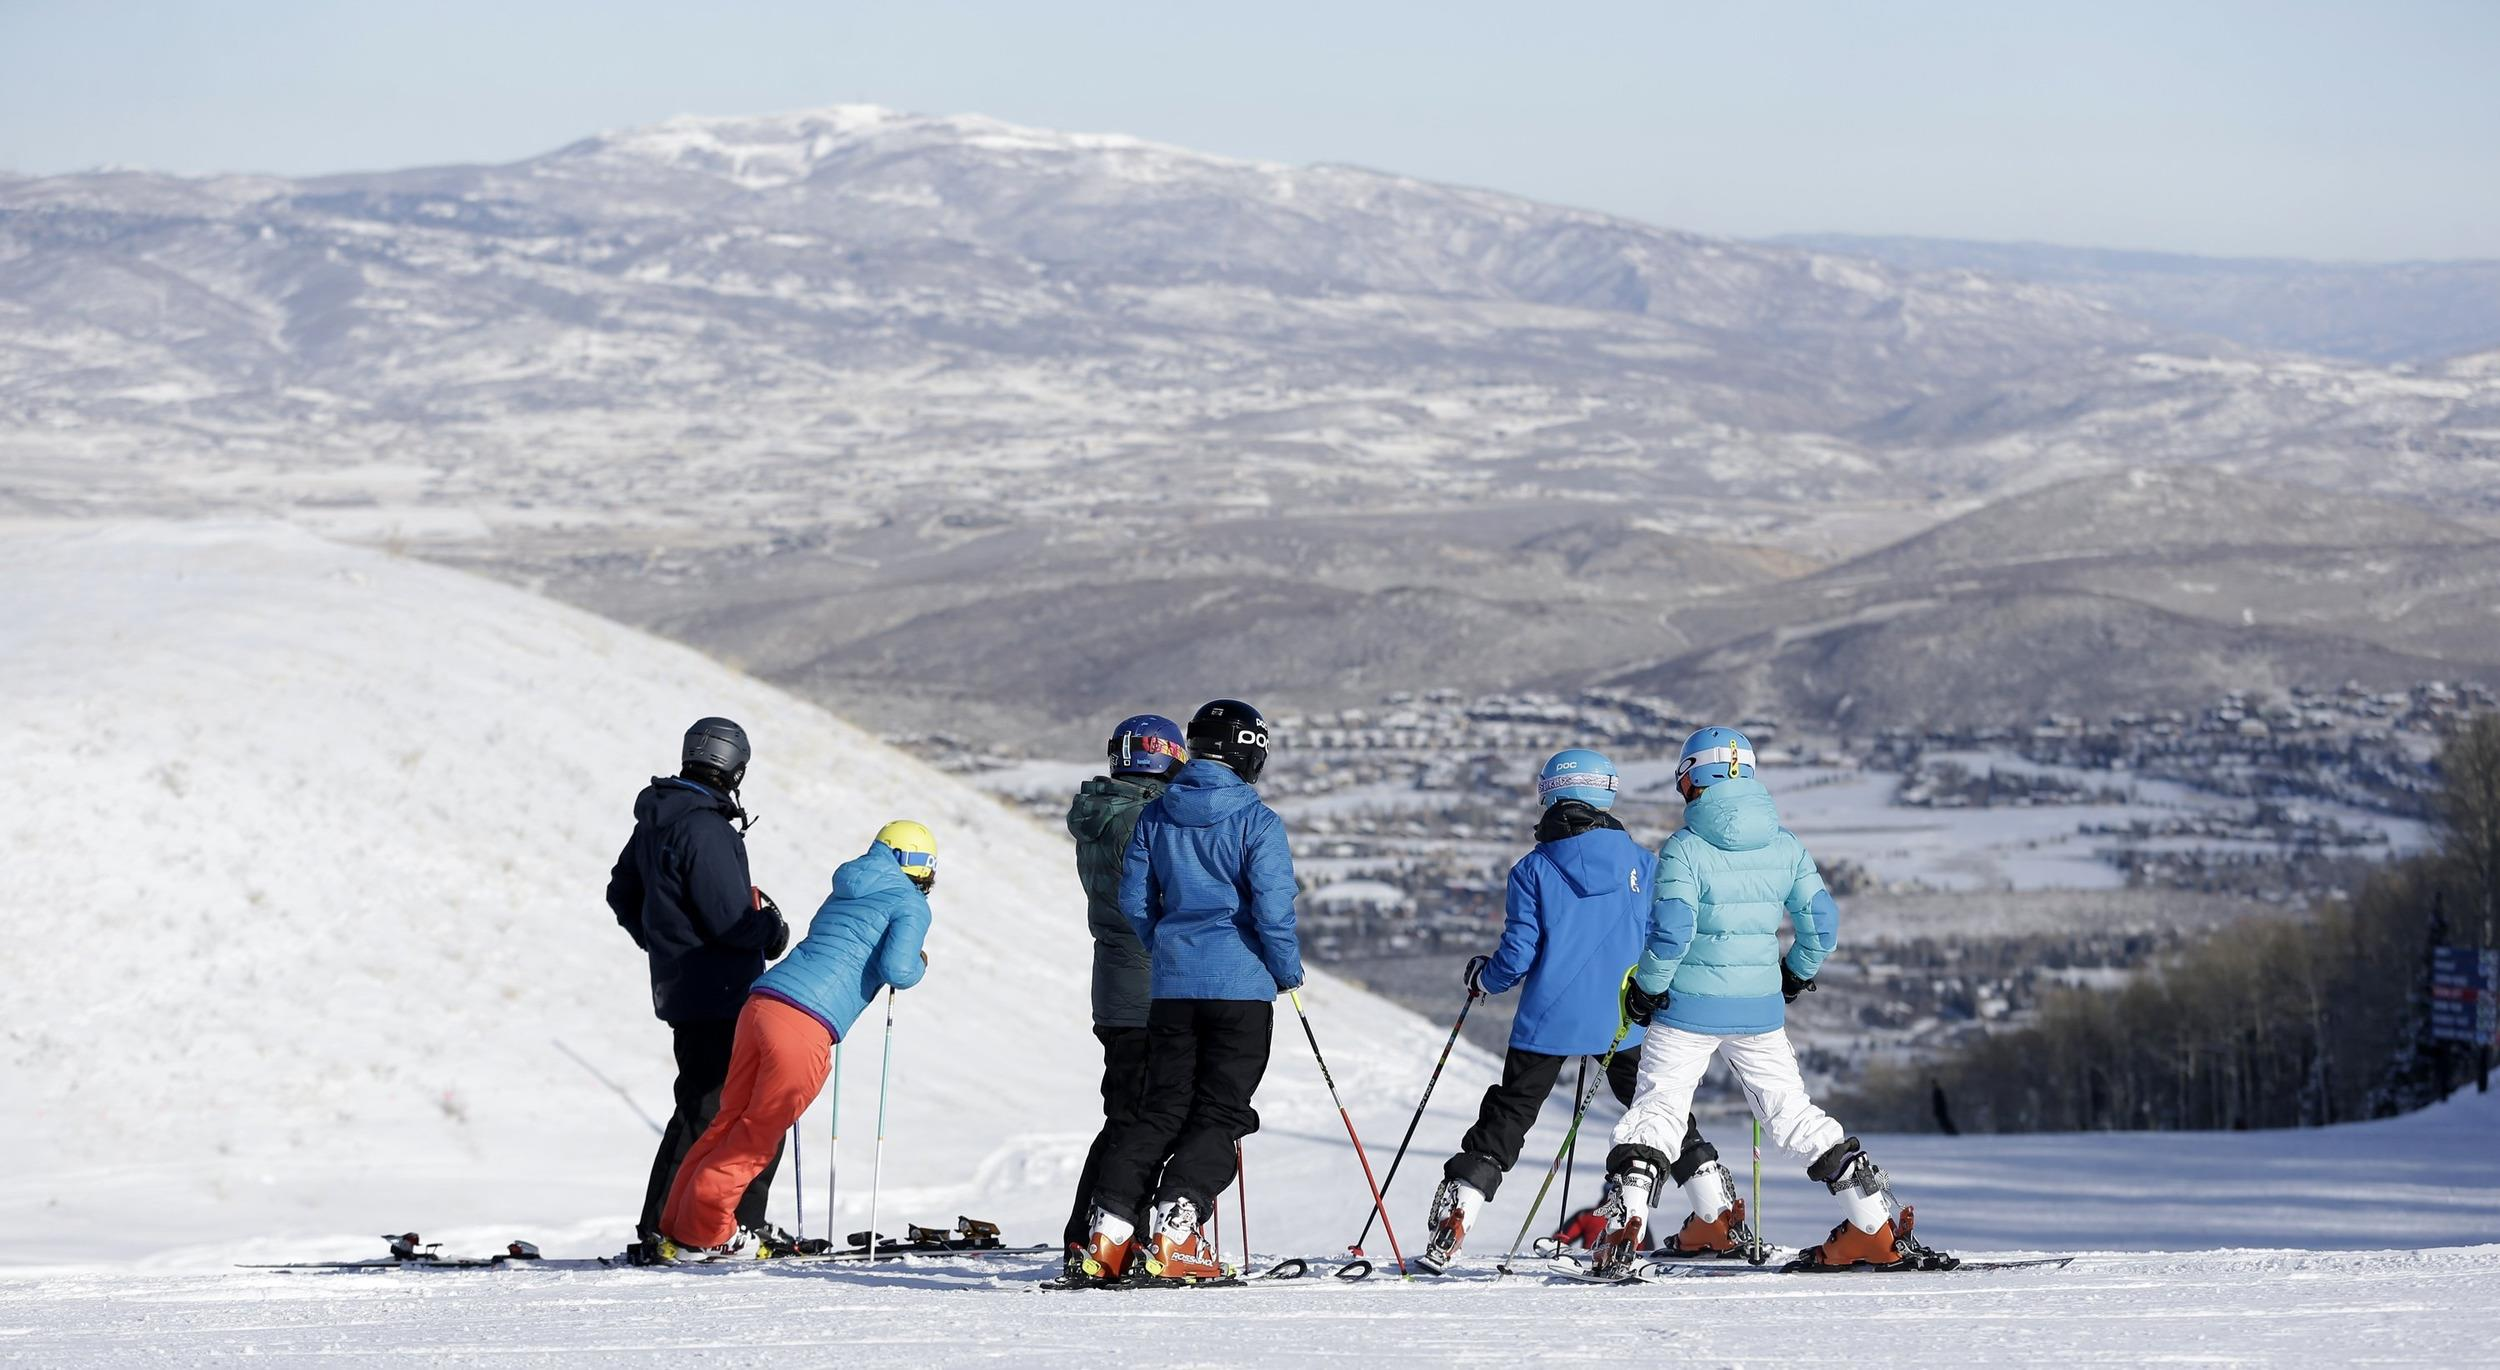 Skiing Standoff Could Be Downhill Run for Park City